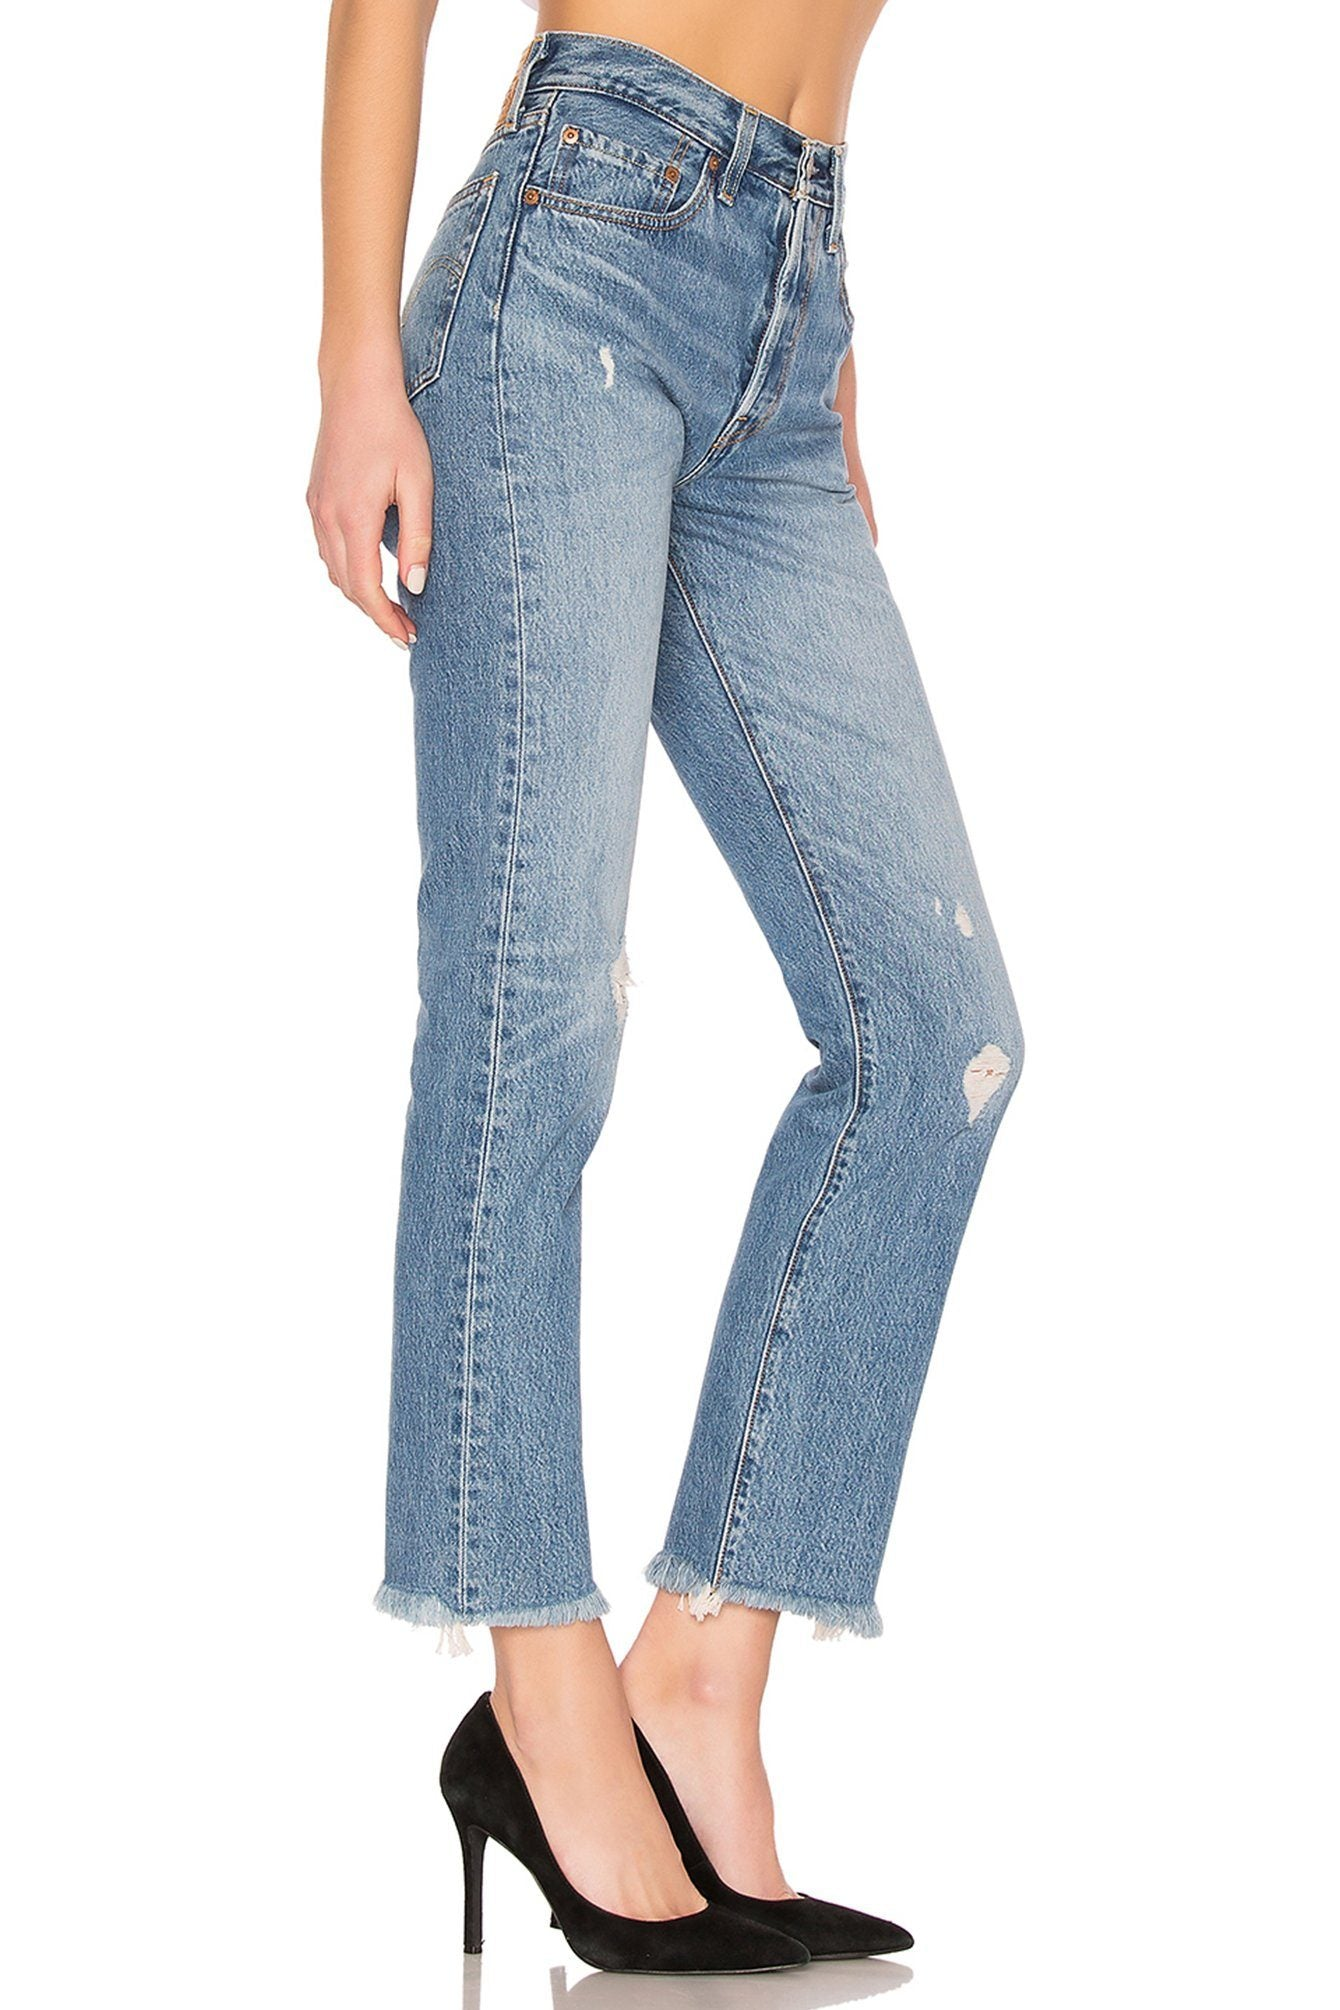 LEVIS | 501 Jean - Truth Unfolds